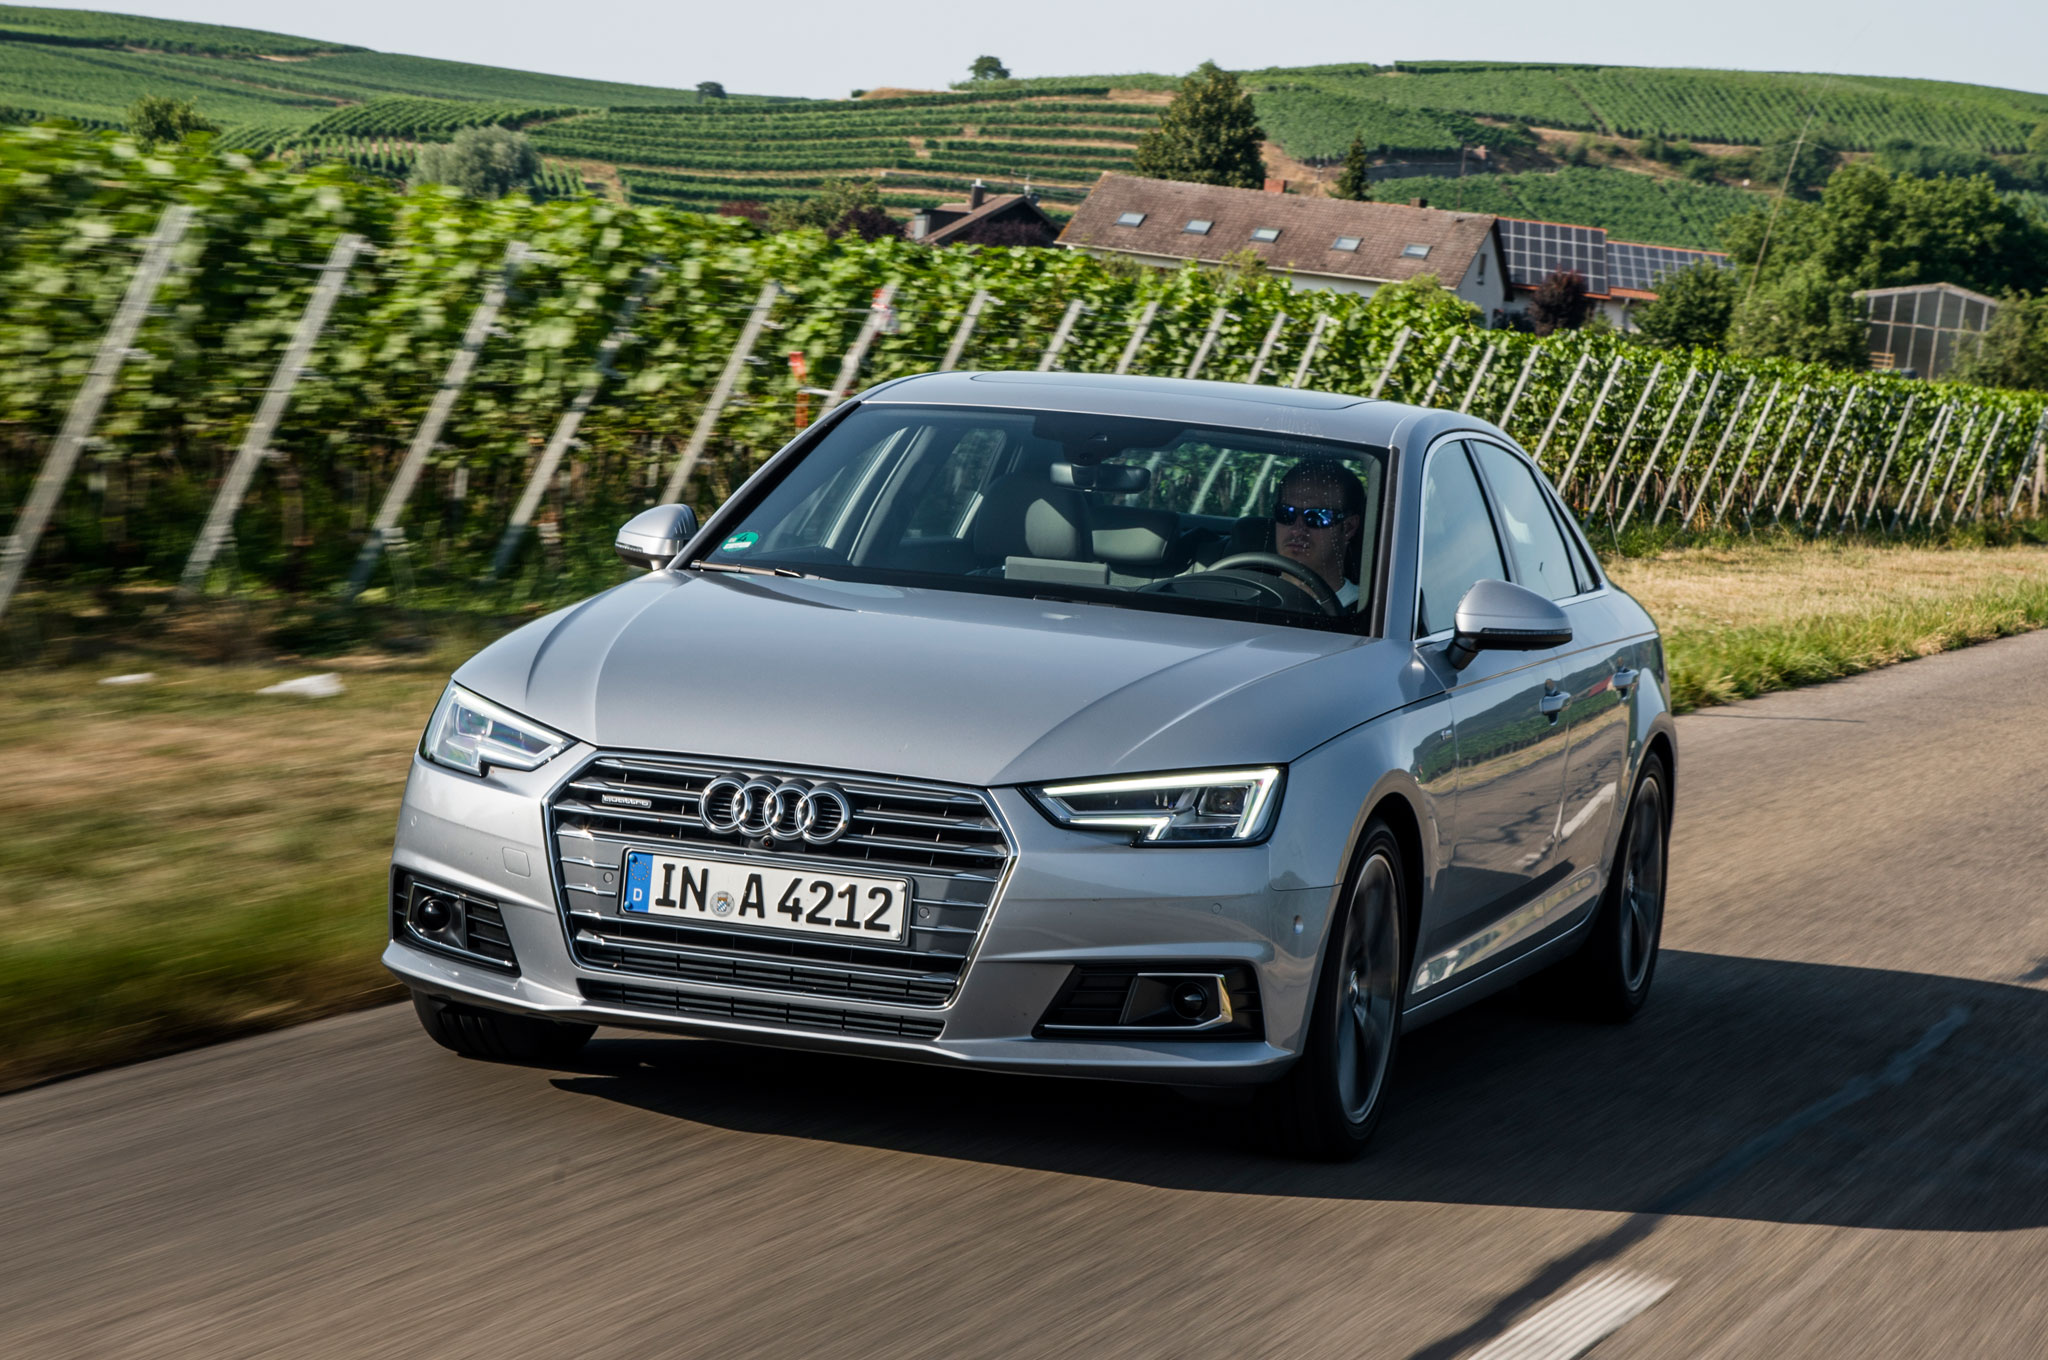 2017 Audi A4 Euro-Spec Review